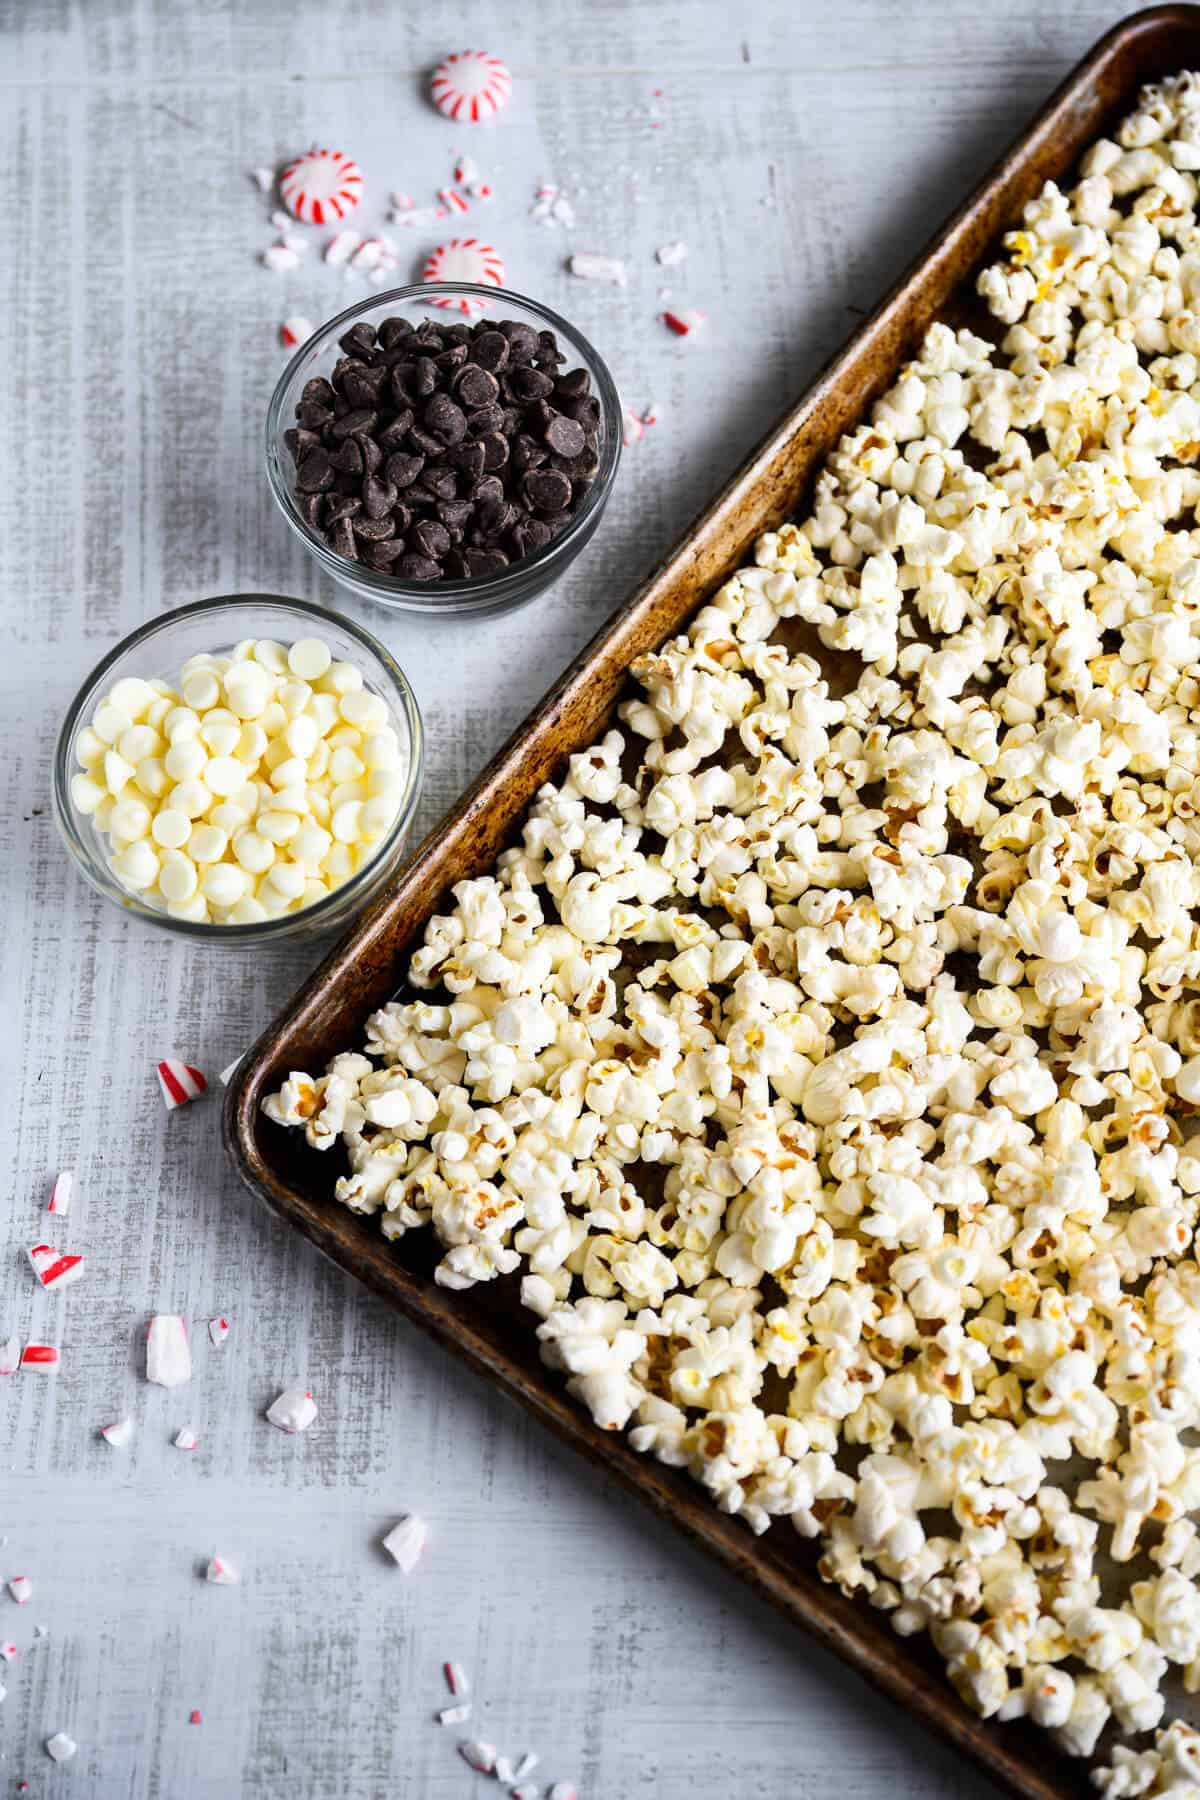 pepprmints, dark and white chocolate chips next to a tray of popcorn